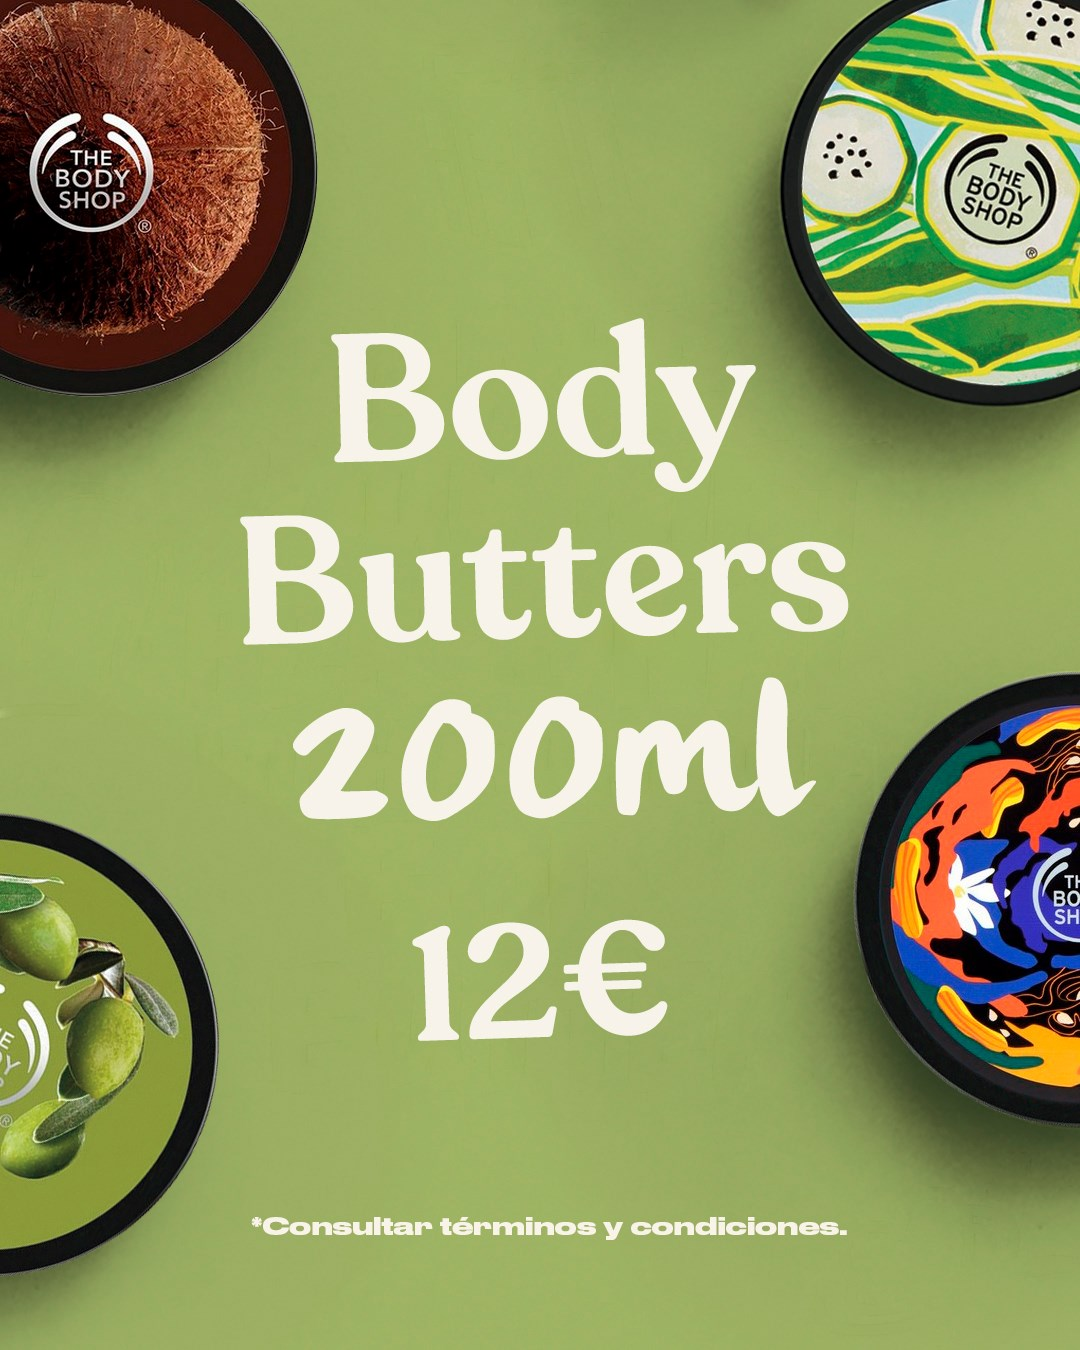 Oferta The Body Shop